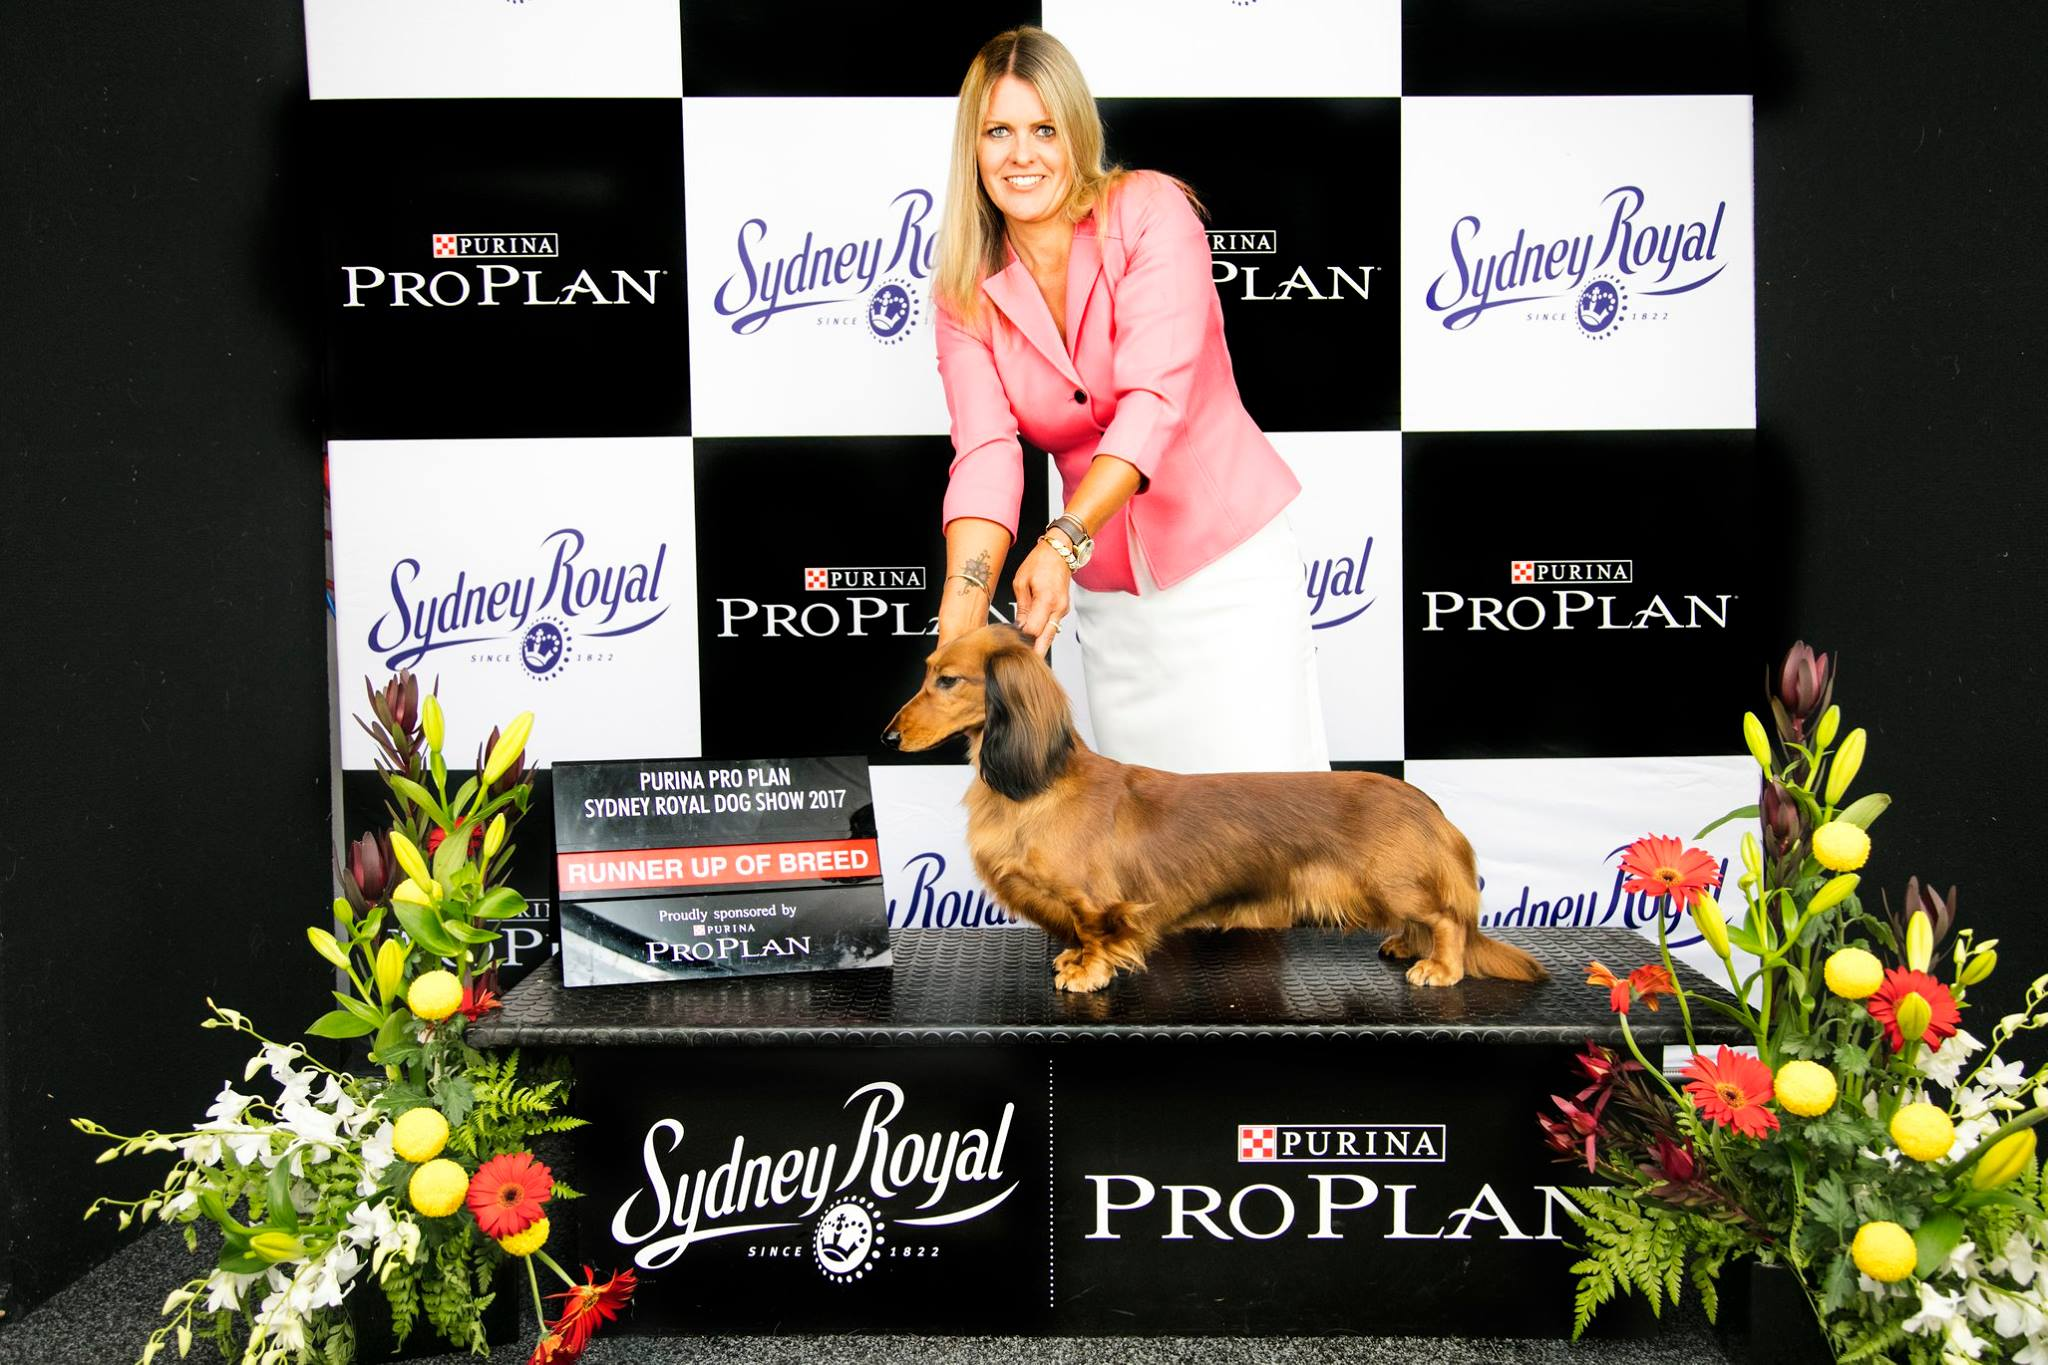 Angie Wins Bitch Challenge & Runner-Up Best of Breed at Sydney Royal Show.